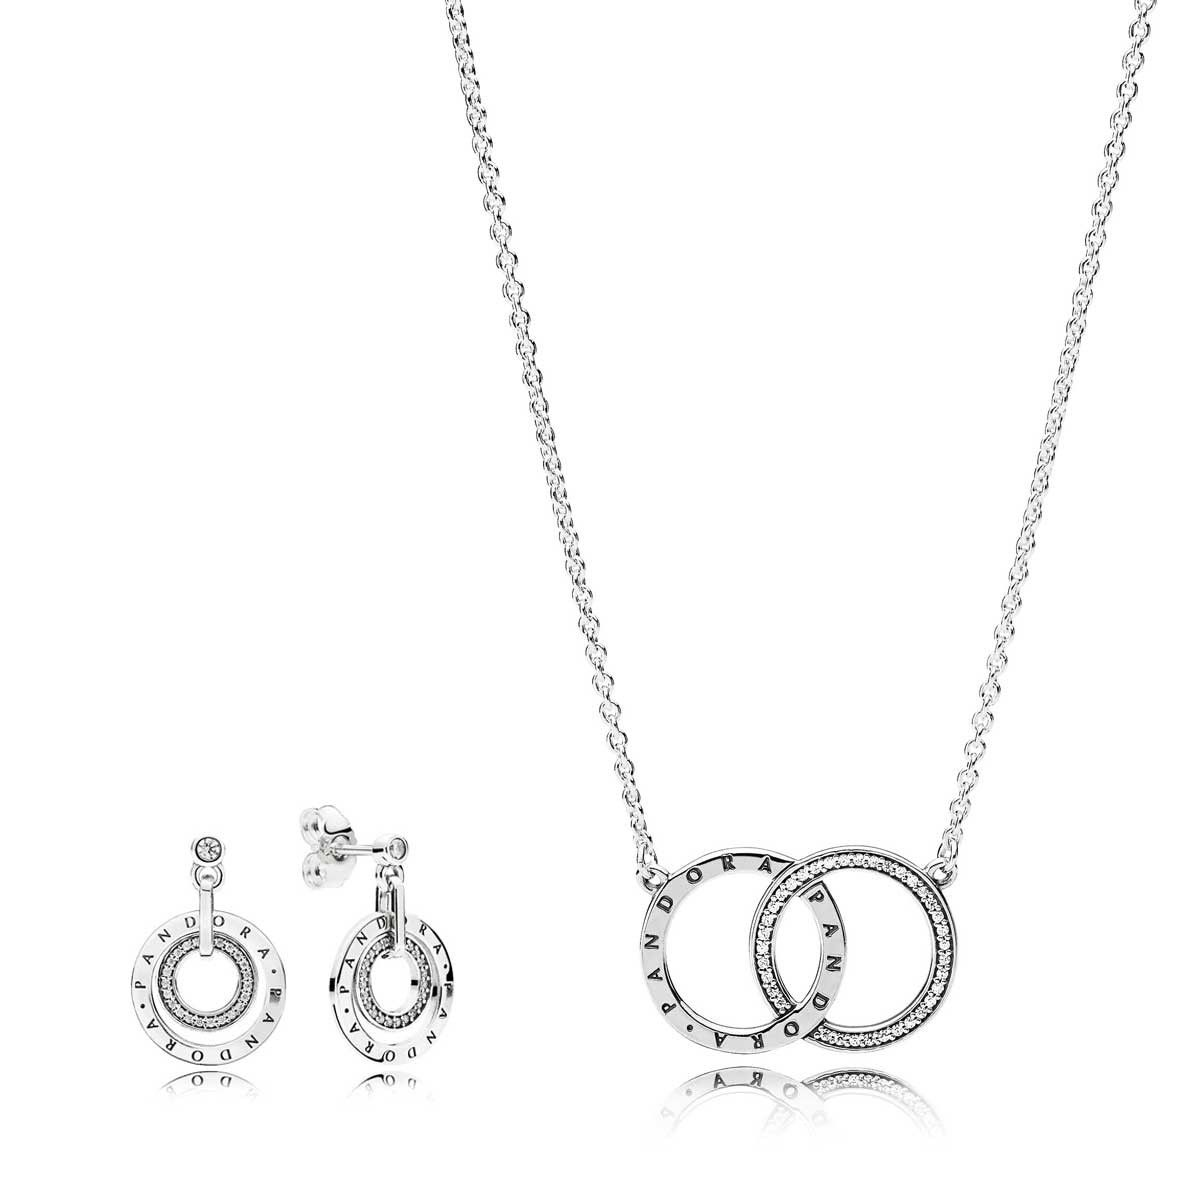 19cab17cc PANDORA CIRCLES JEWELLERY SET - Pandora Black Friday 2018 sale ...